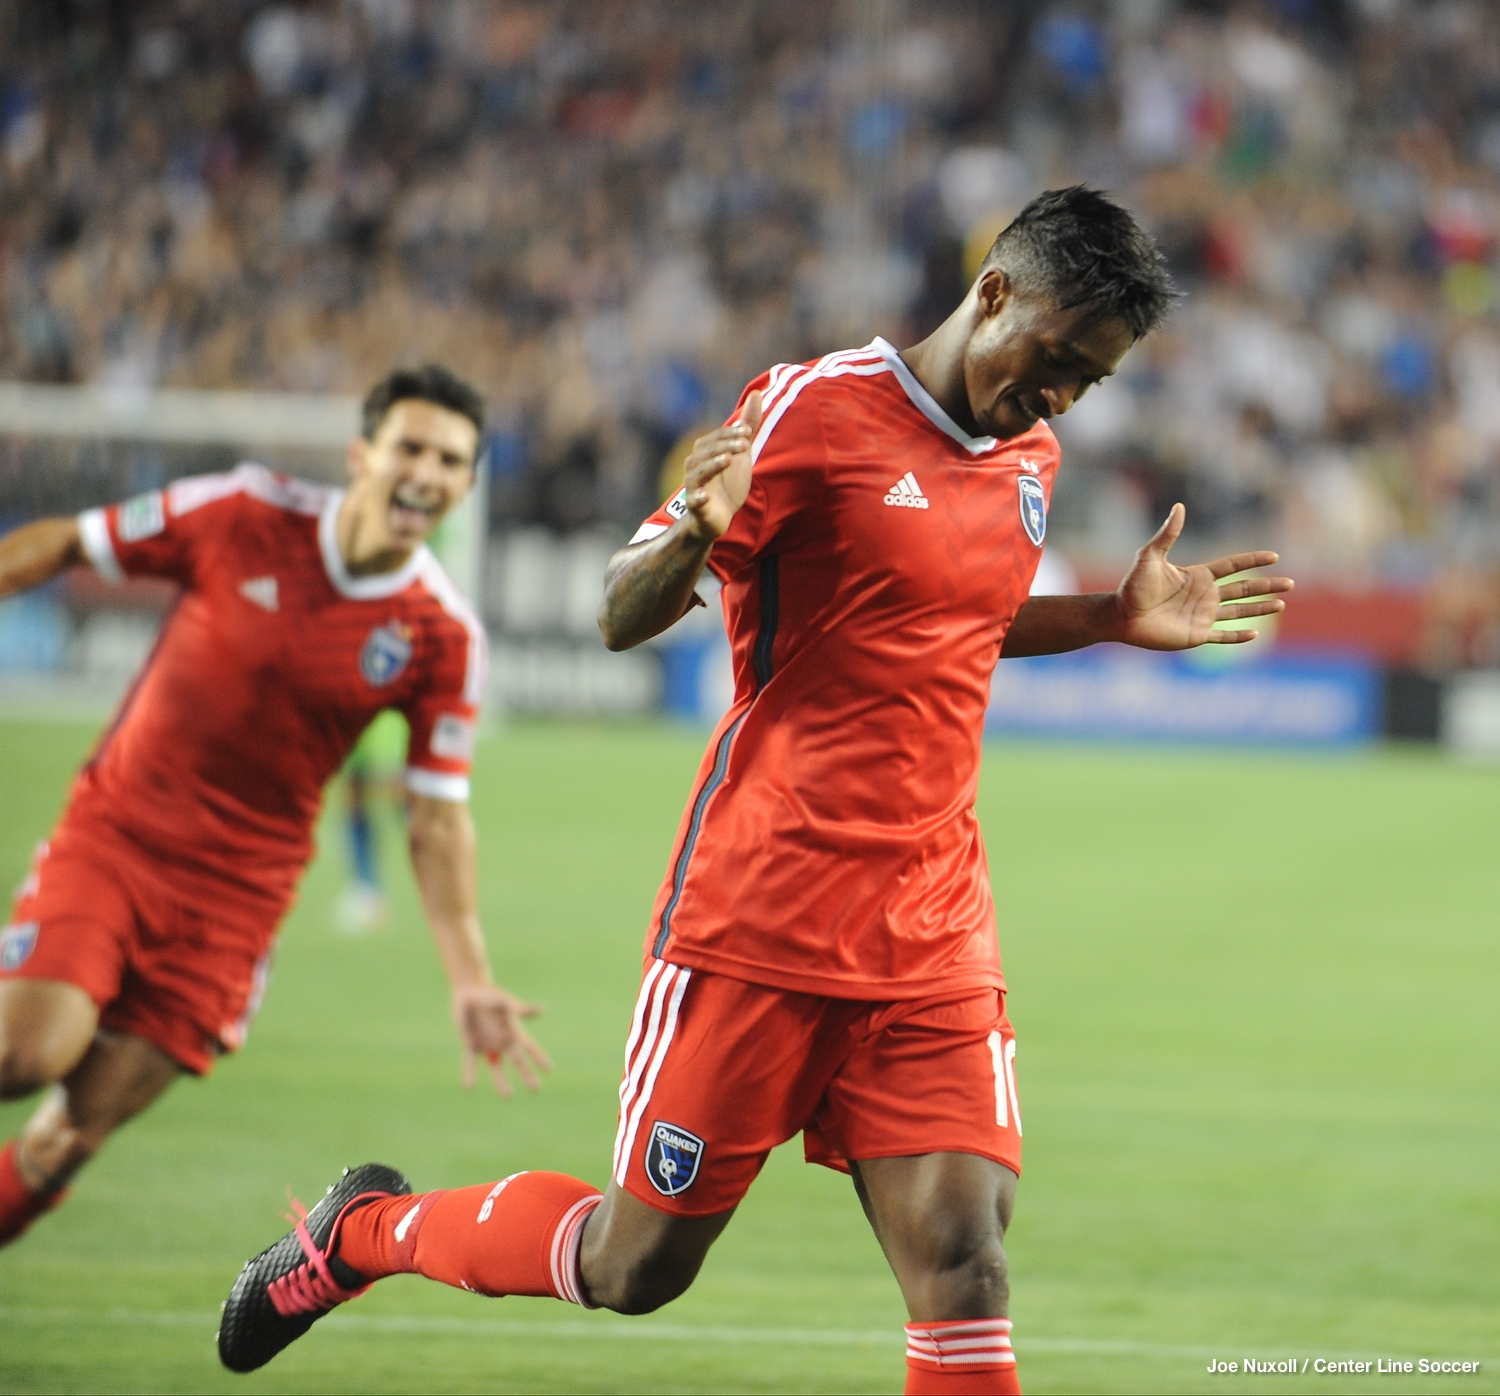 Yannick Djalo scores against the Seattle Sounders FC at the new Levi's Stadium